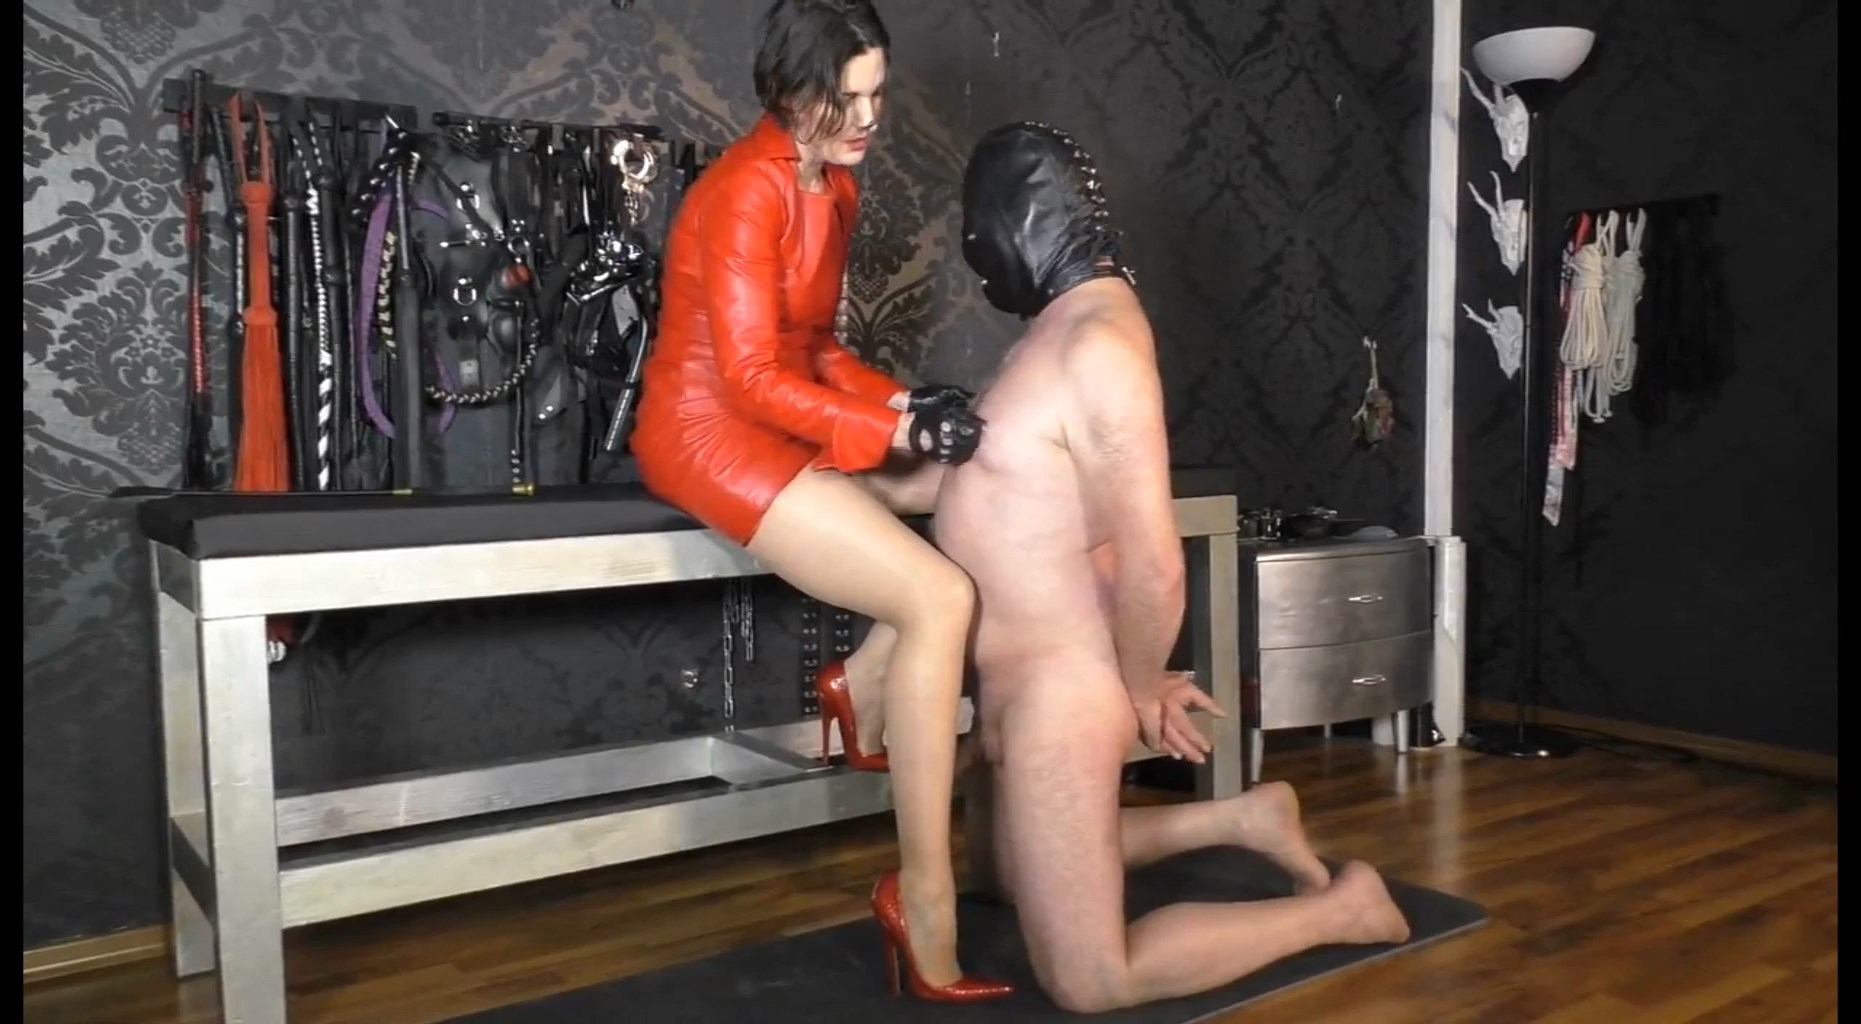 Exciting Training For Made In Red Leather Outfit And Extreme 6 Inch Heels - LADY VICTORIA VALENTE - HD/1024p/MP4